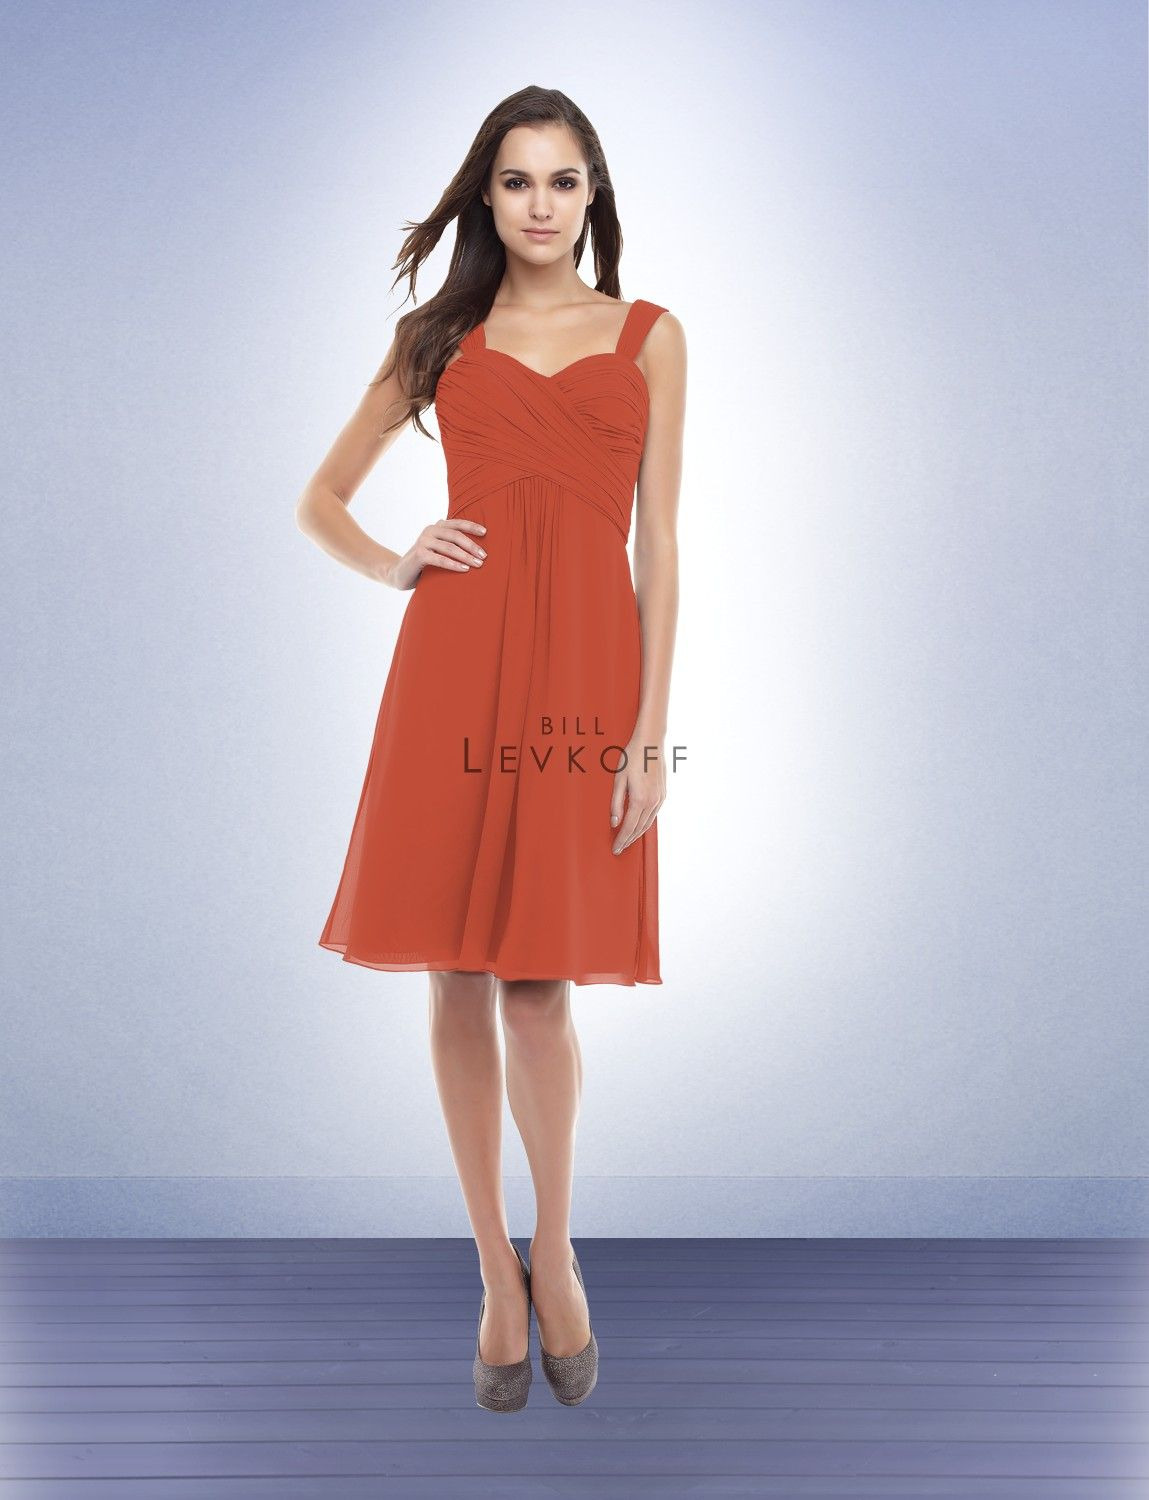 Bridesmaid dress style 155 terracotta color bill levkoff bridesmaid dress style 155 terracotta color bill levkoff ombrellifo Images